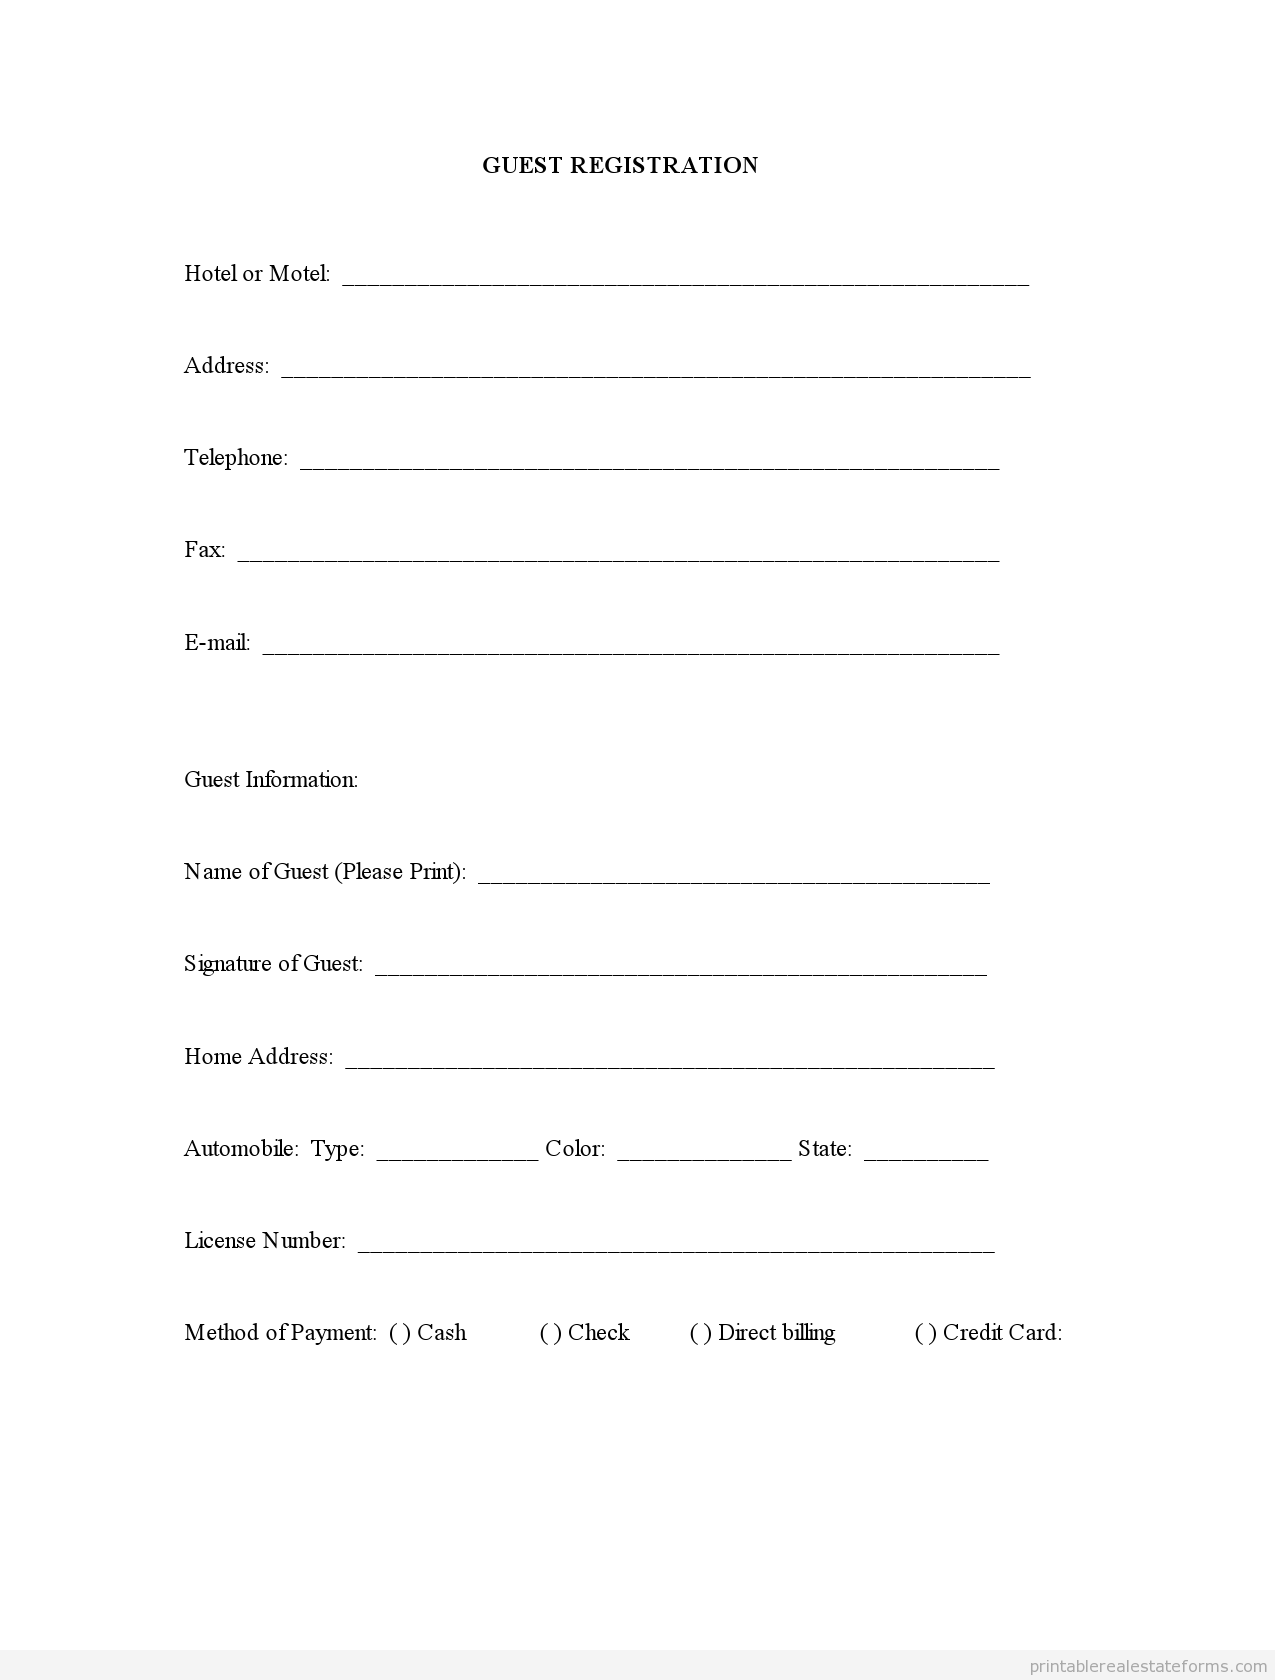 Sample Printable Guest Registration Form In